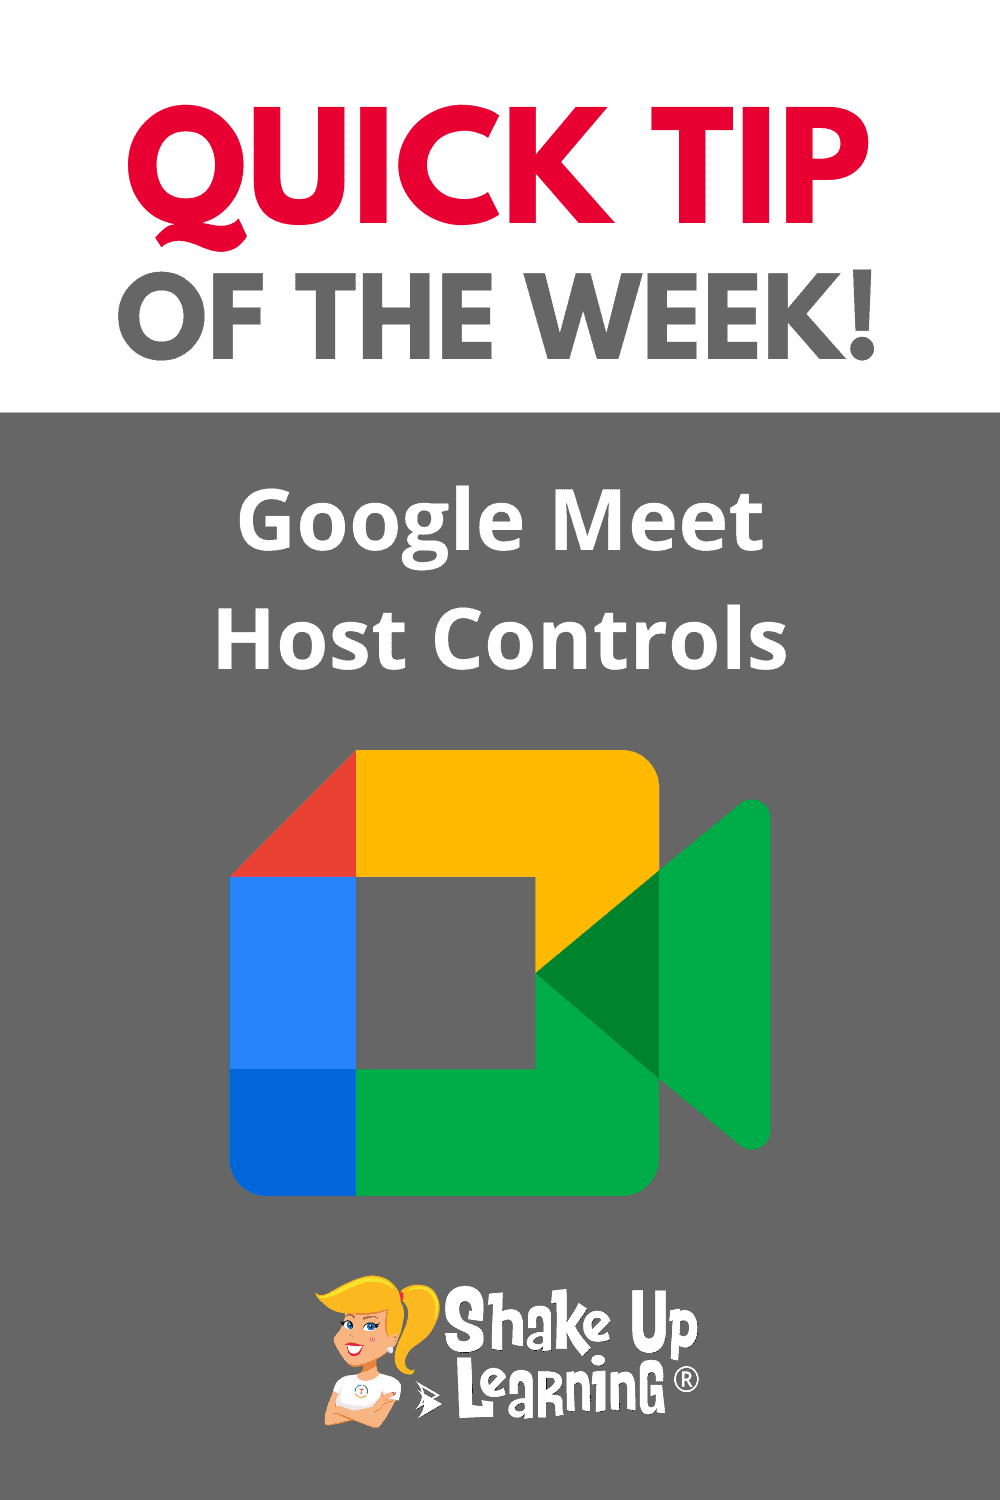 Google Meet Host Controls: How to block access, chat, and more!